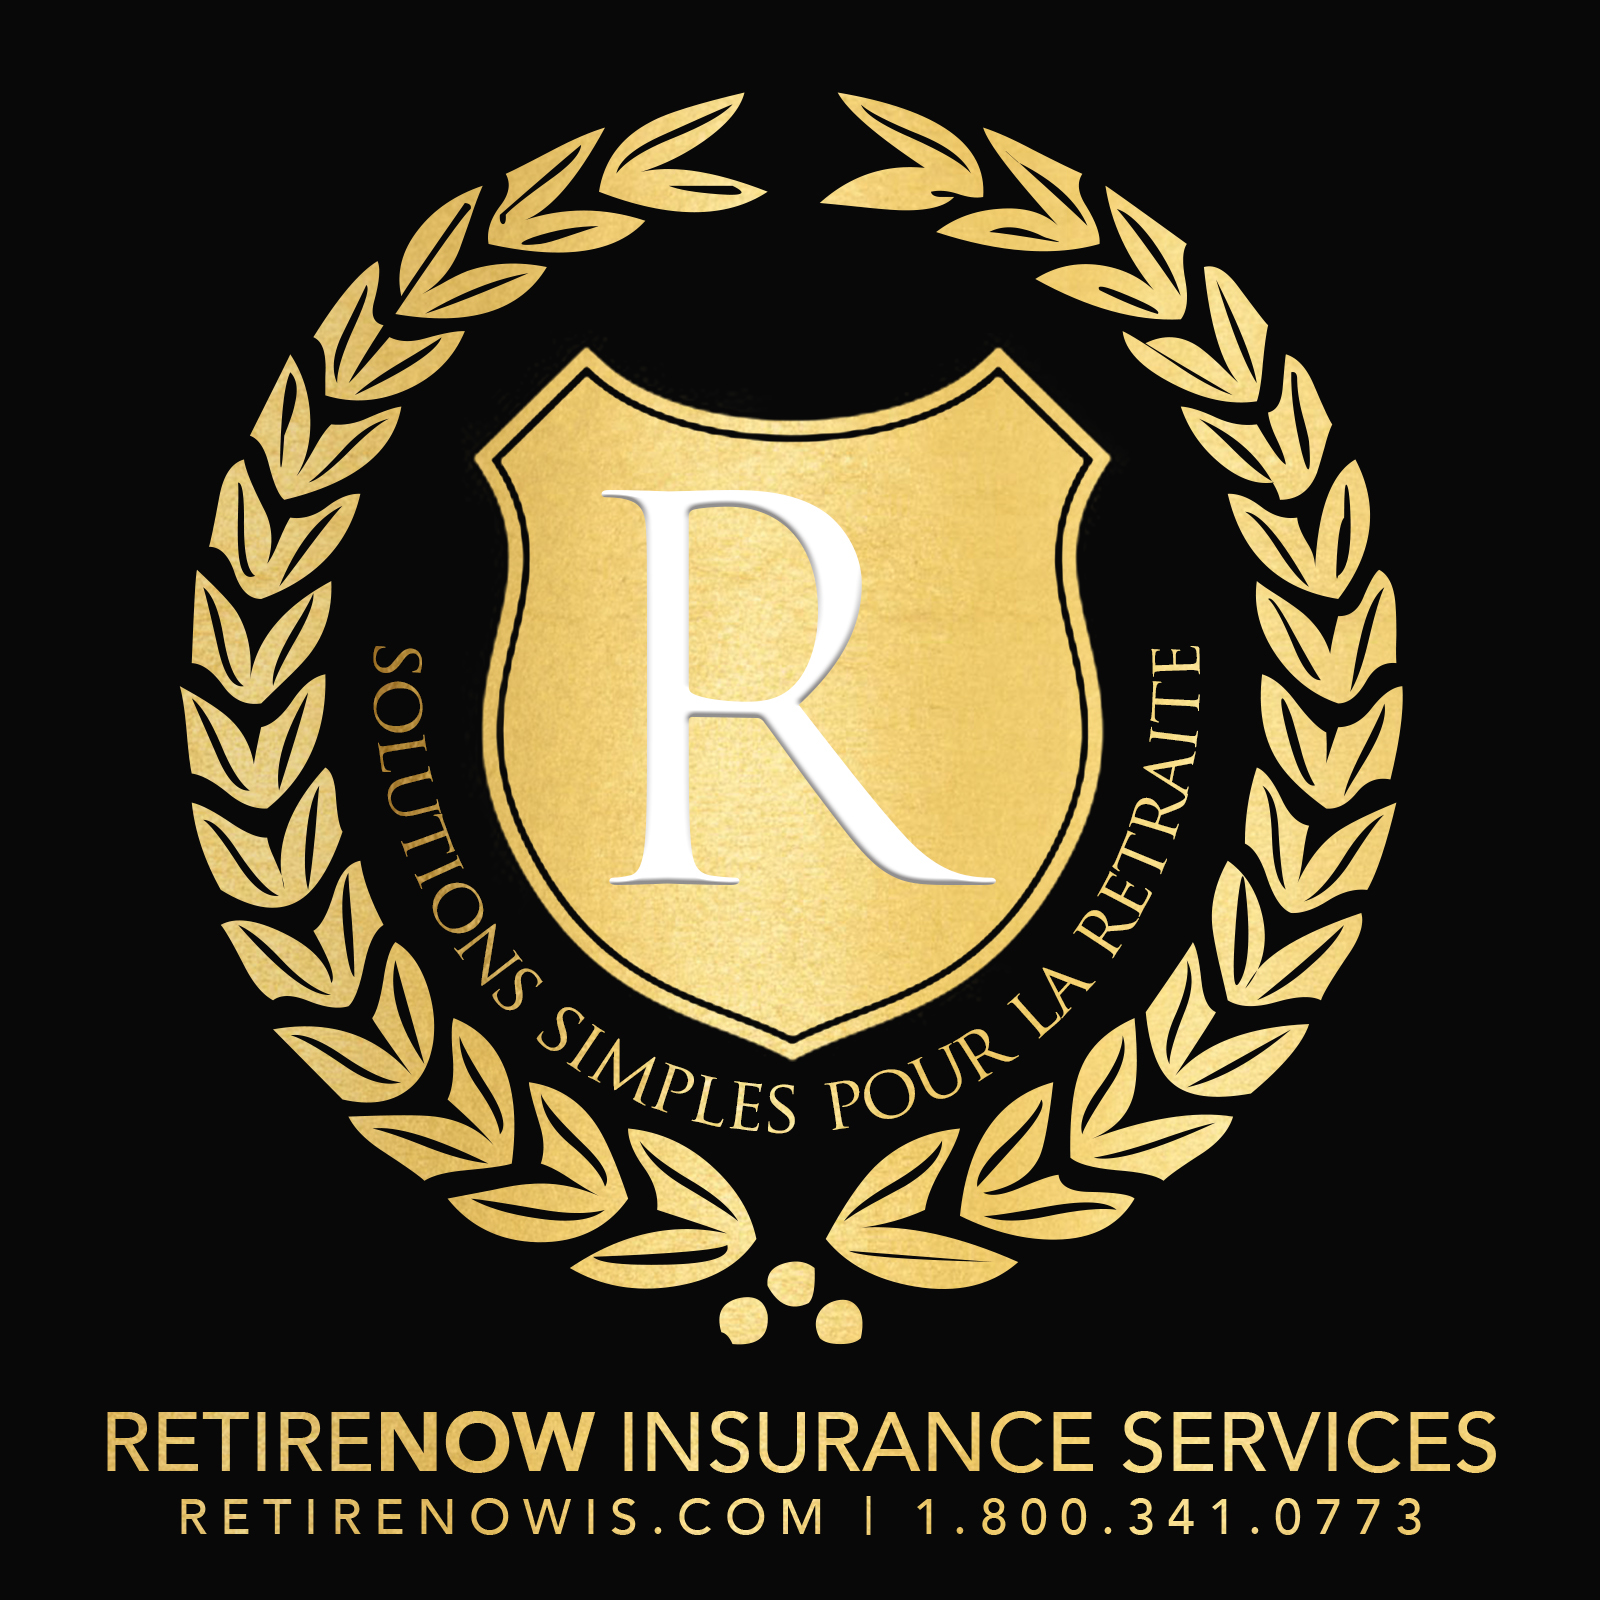 RetireNow Insurance Services - Black Owned